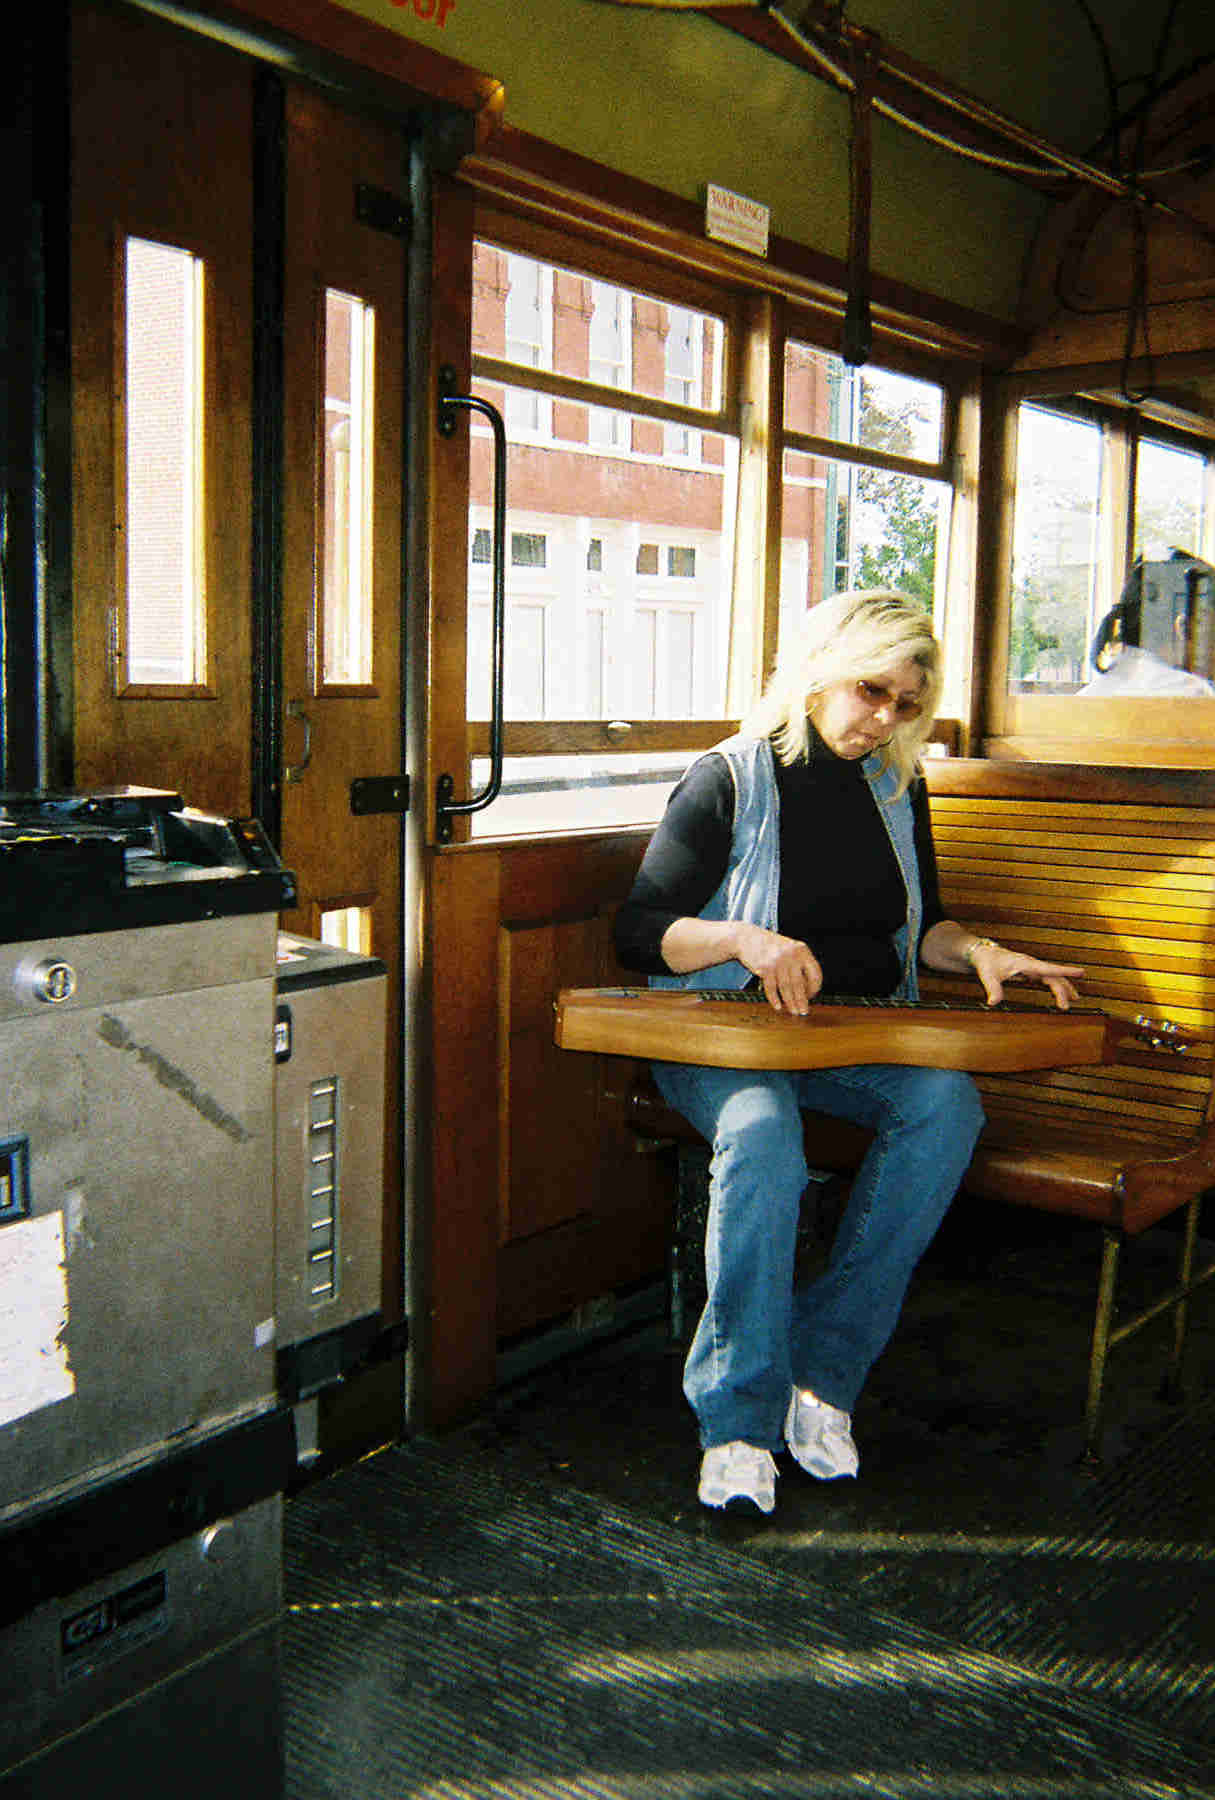 mdg2006_nd_046-21a_debontrolley.jpg